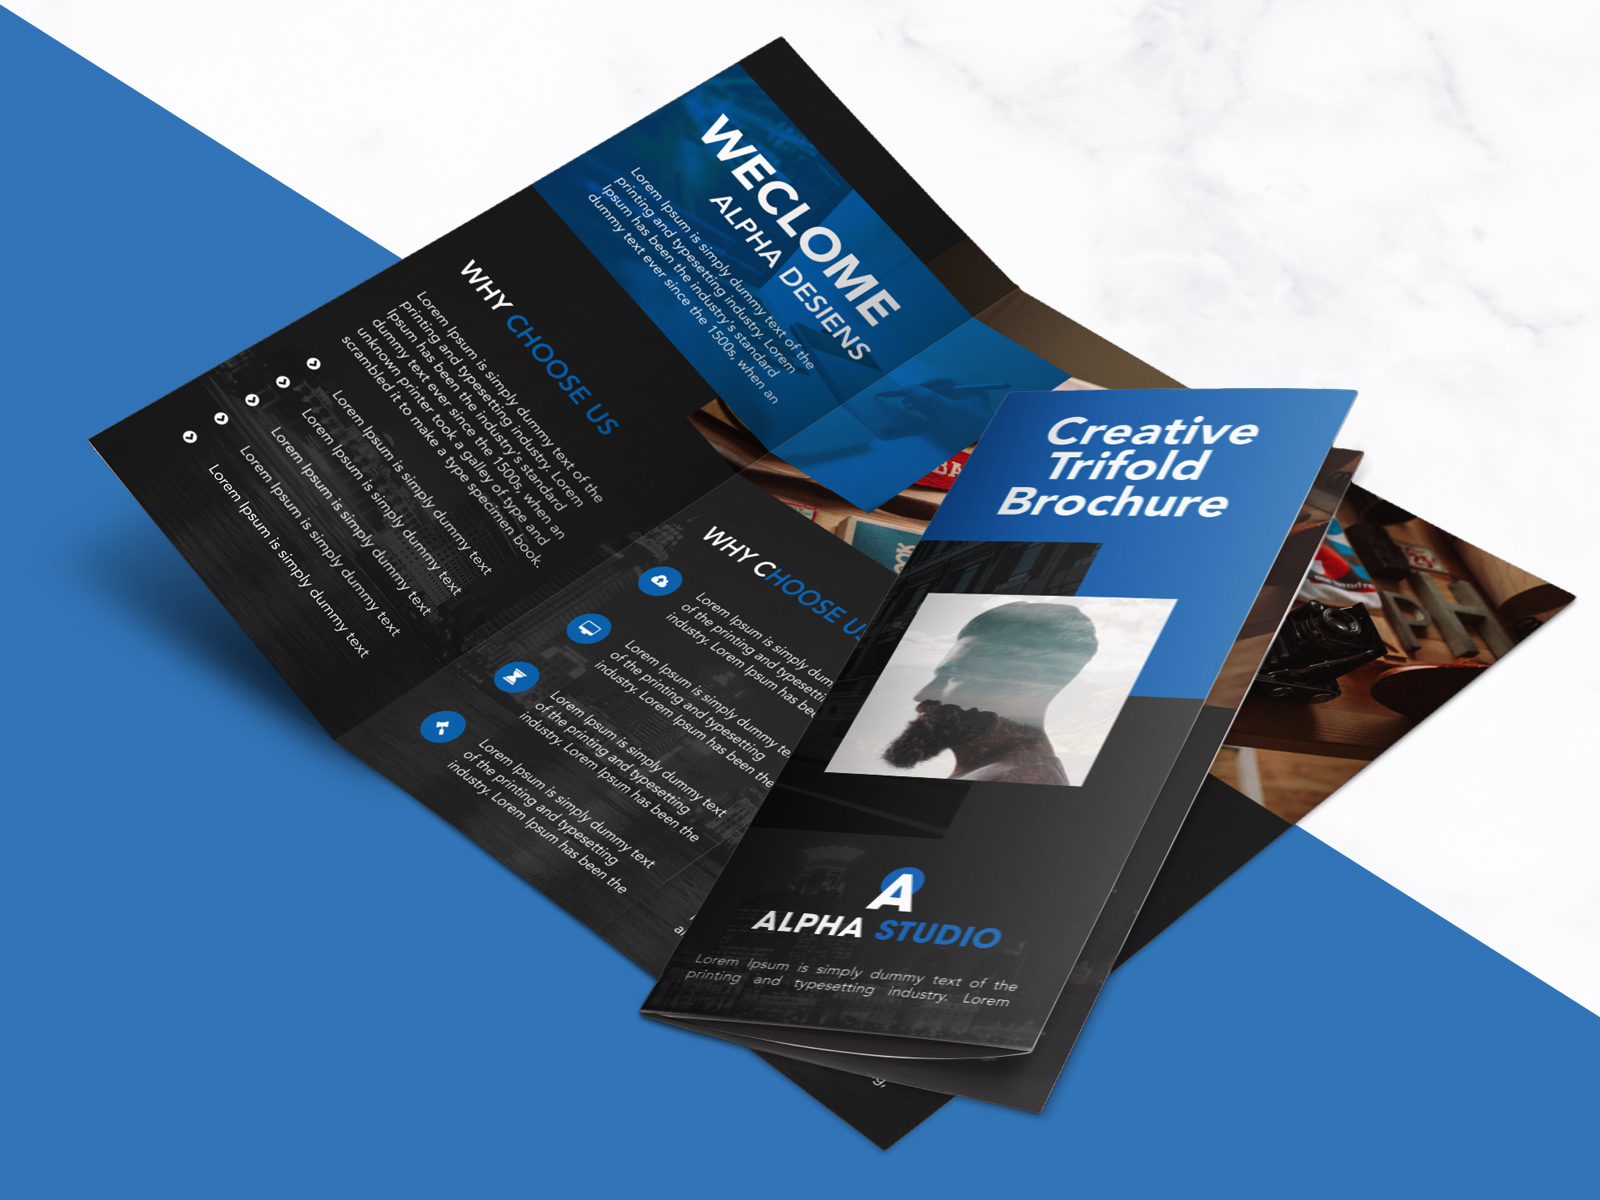 corporate brochure design psd free download - creative agency trifold brochure free psd template